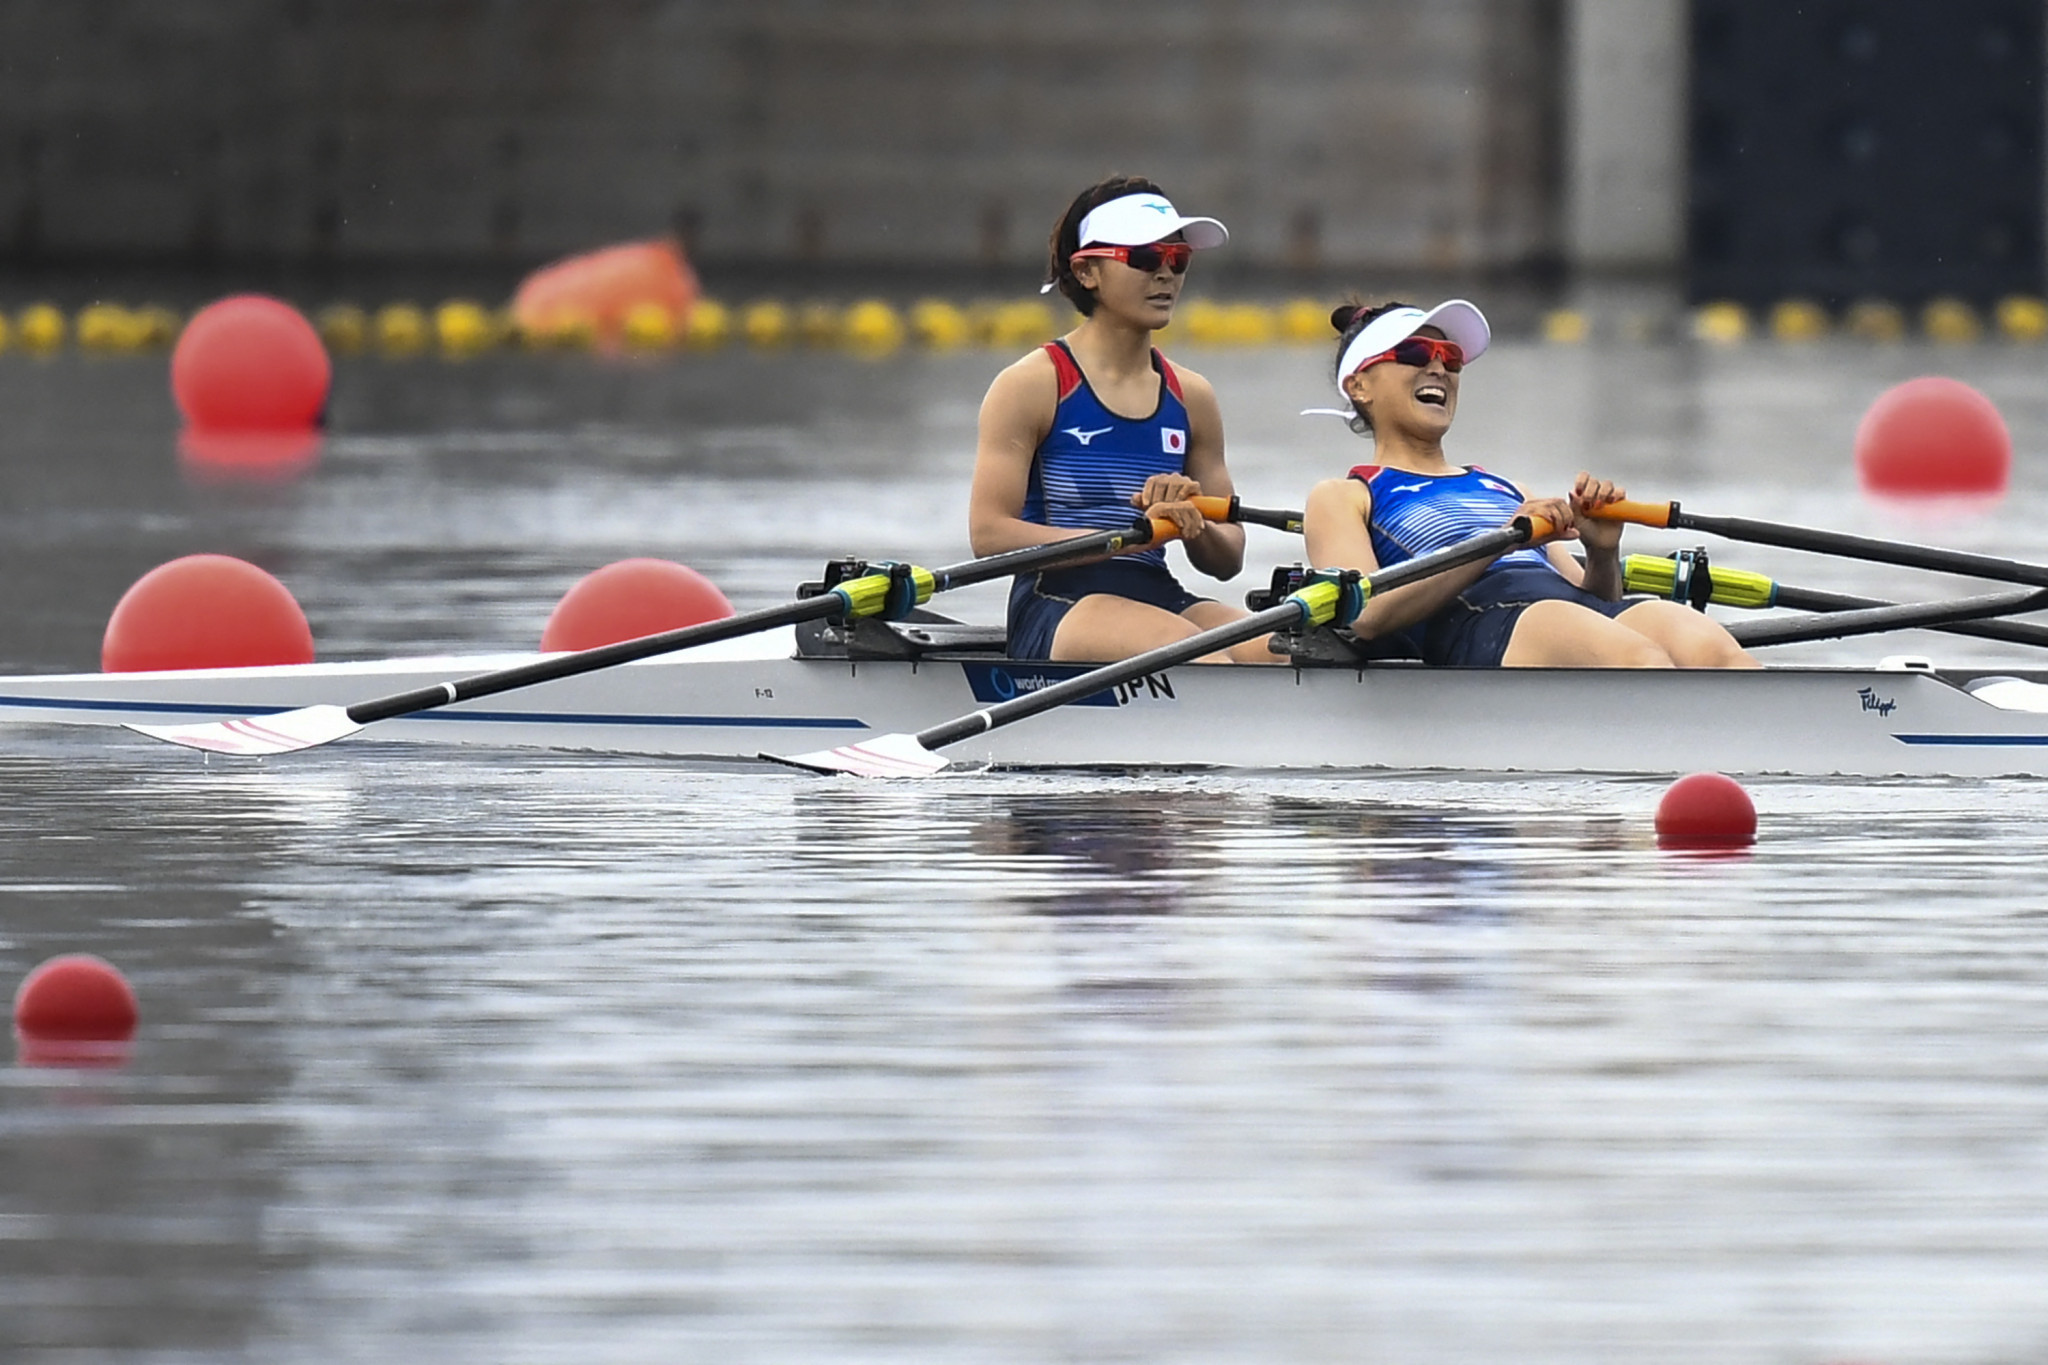 Four final crews complete Tokyo 2020 Paralympic rowing line-up through bipartite process